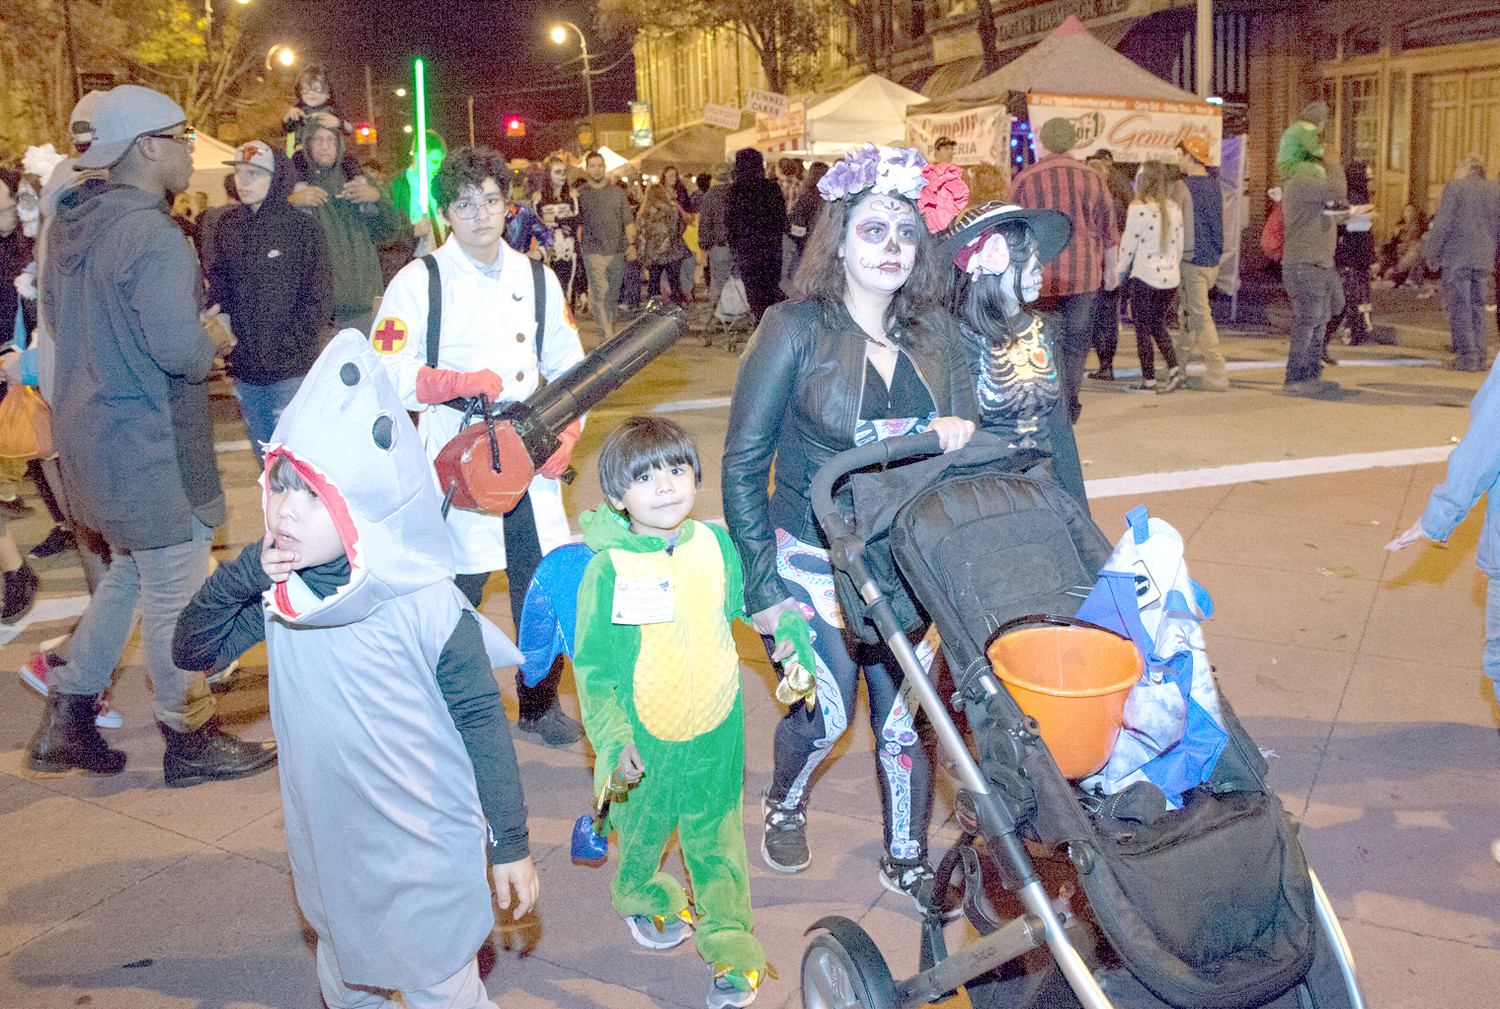 THIS FAMILY: a shark, a dragon, a medic and two ladies dressed for Dia de los Muertos, hunt for candy, food and fun during the Block Party.